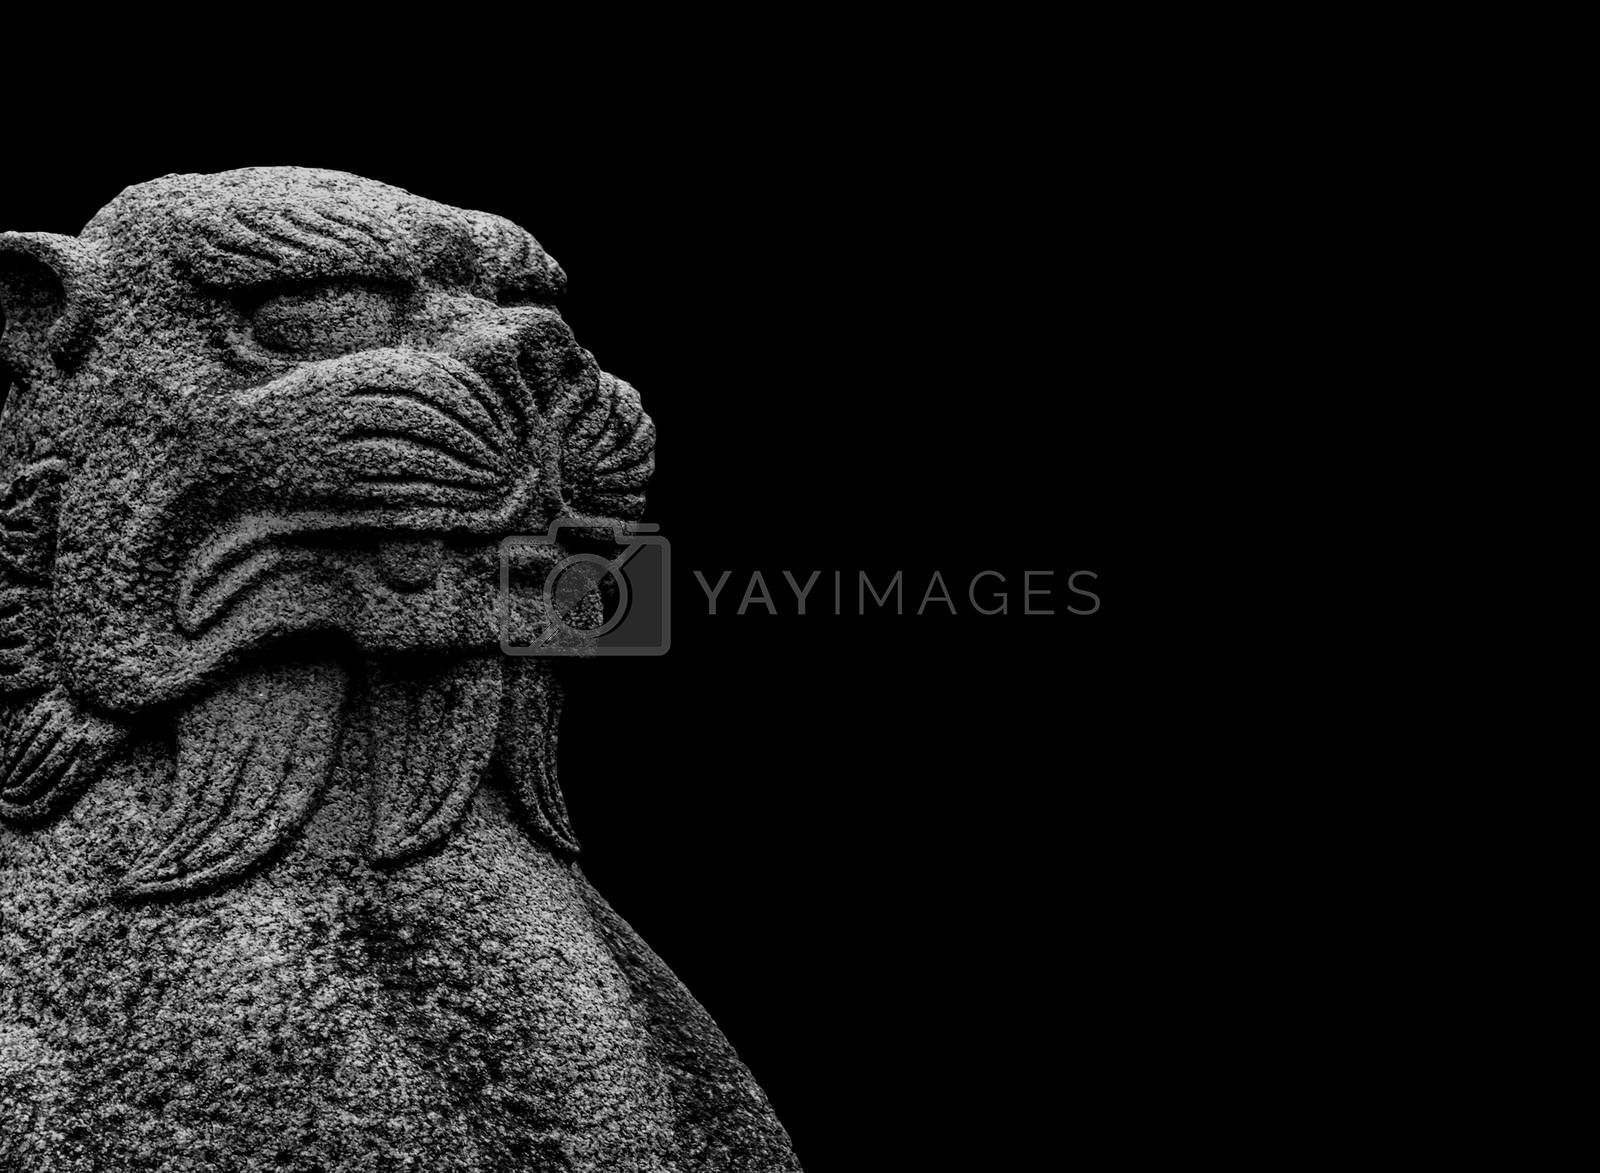 Royalty free image of Fantasy Animal Sculpture Creepy Background by DanFLCreative